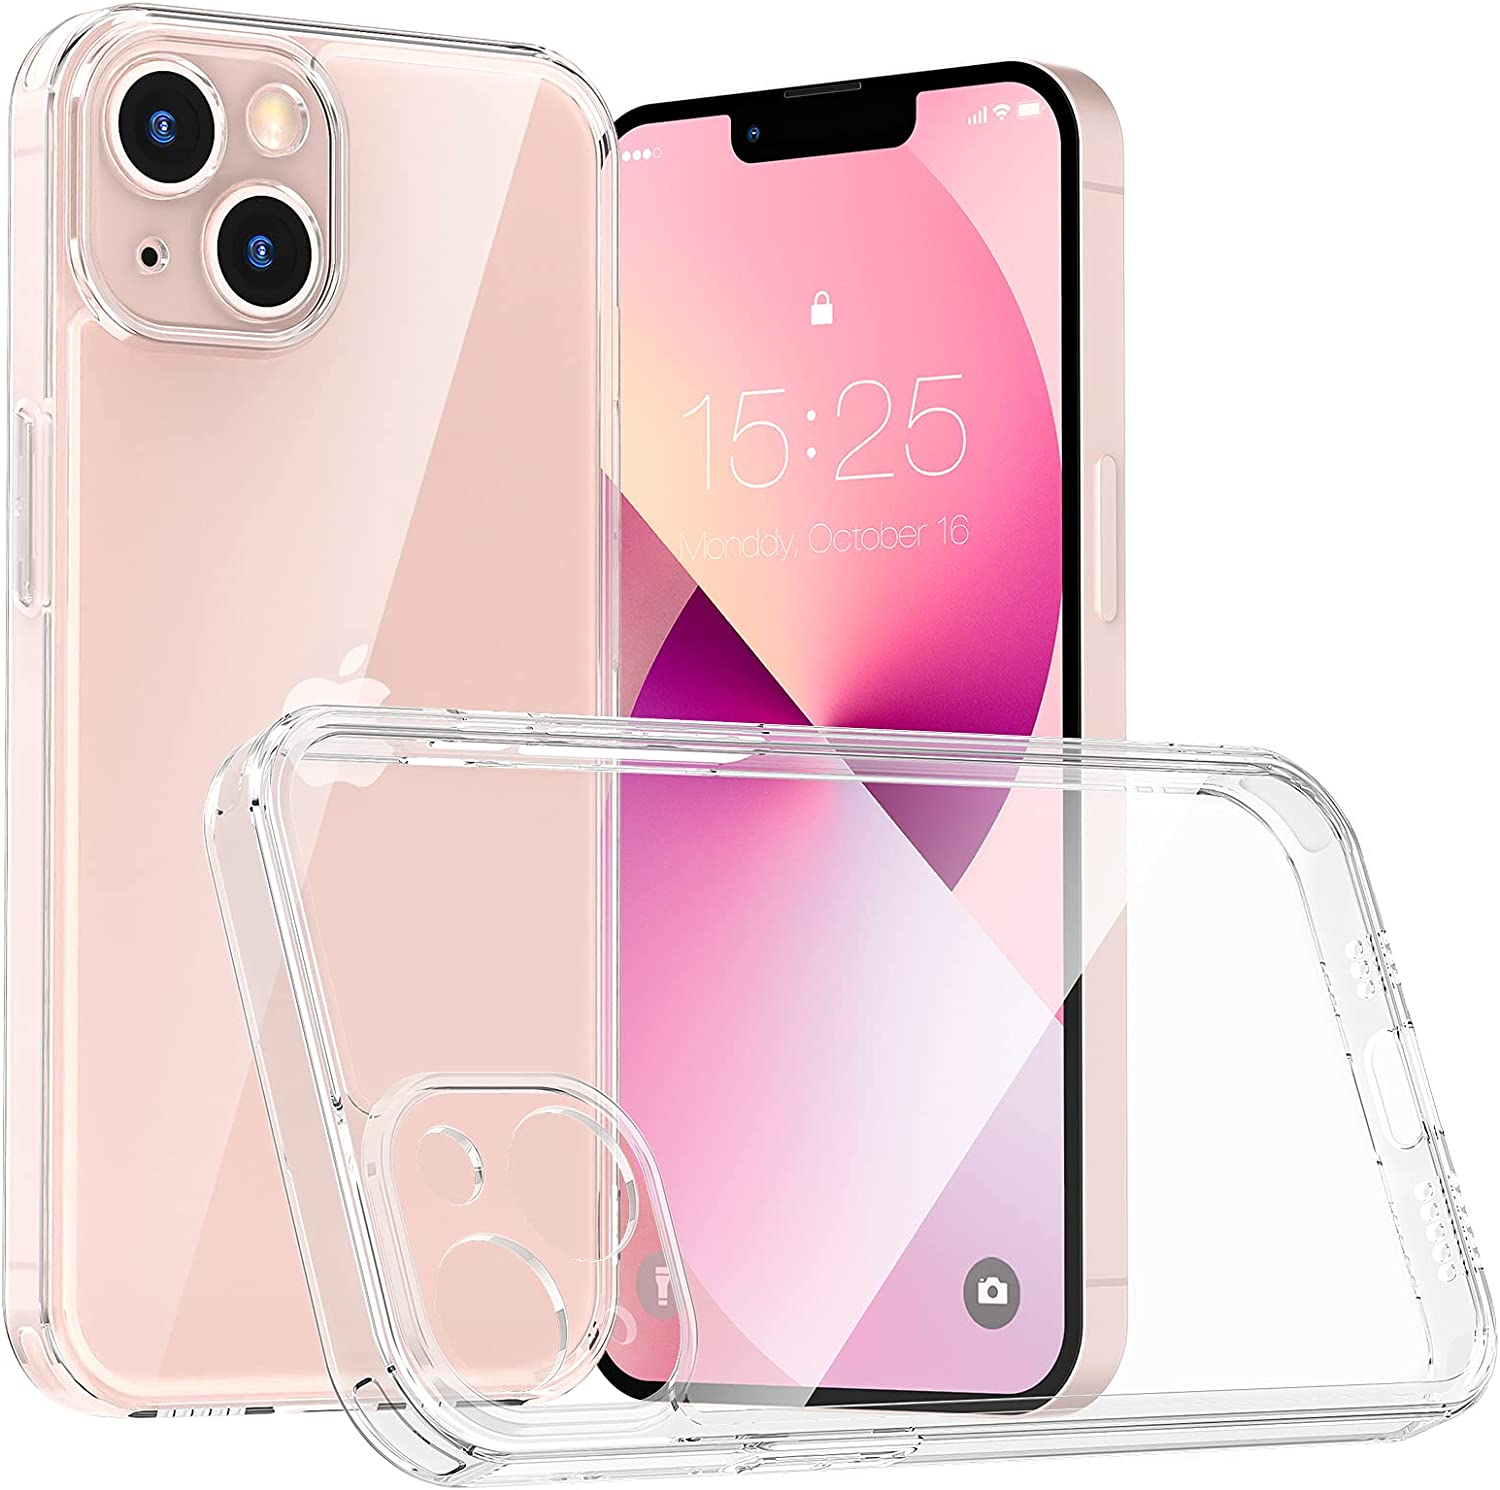 MILPROX Compatible for iPhone 13 Mini Clear Case (2021), Crystal Transparent Cover Slim Shockproof Protective Bumper Phone shell with Camera Lens Protection for iPhone 13 Mini【2 Cameras】-Clear Precise